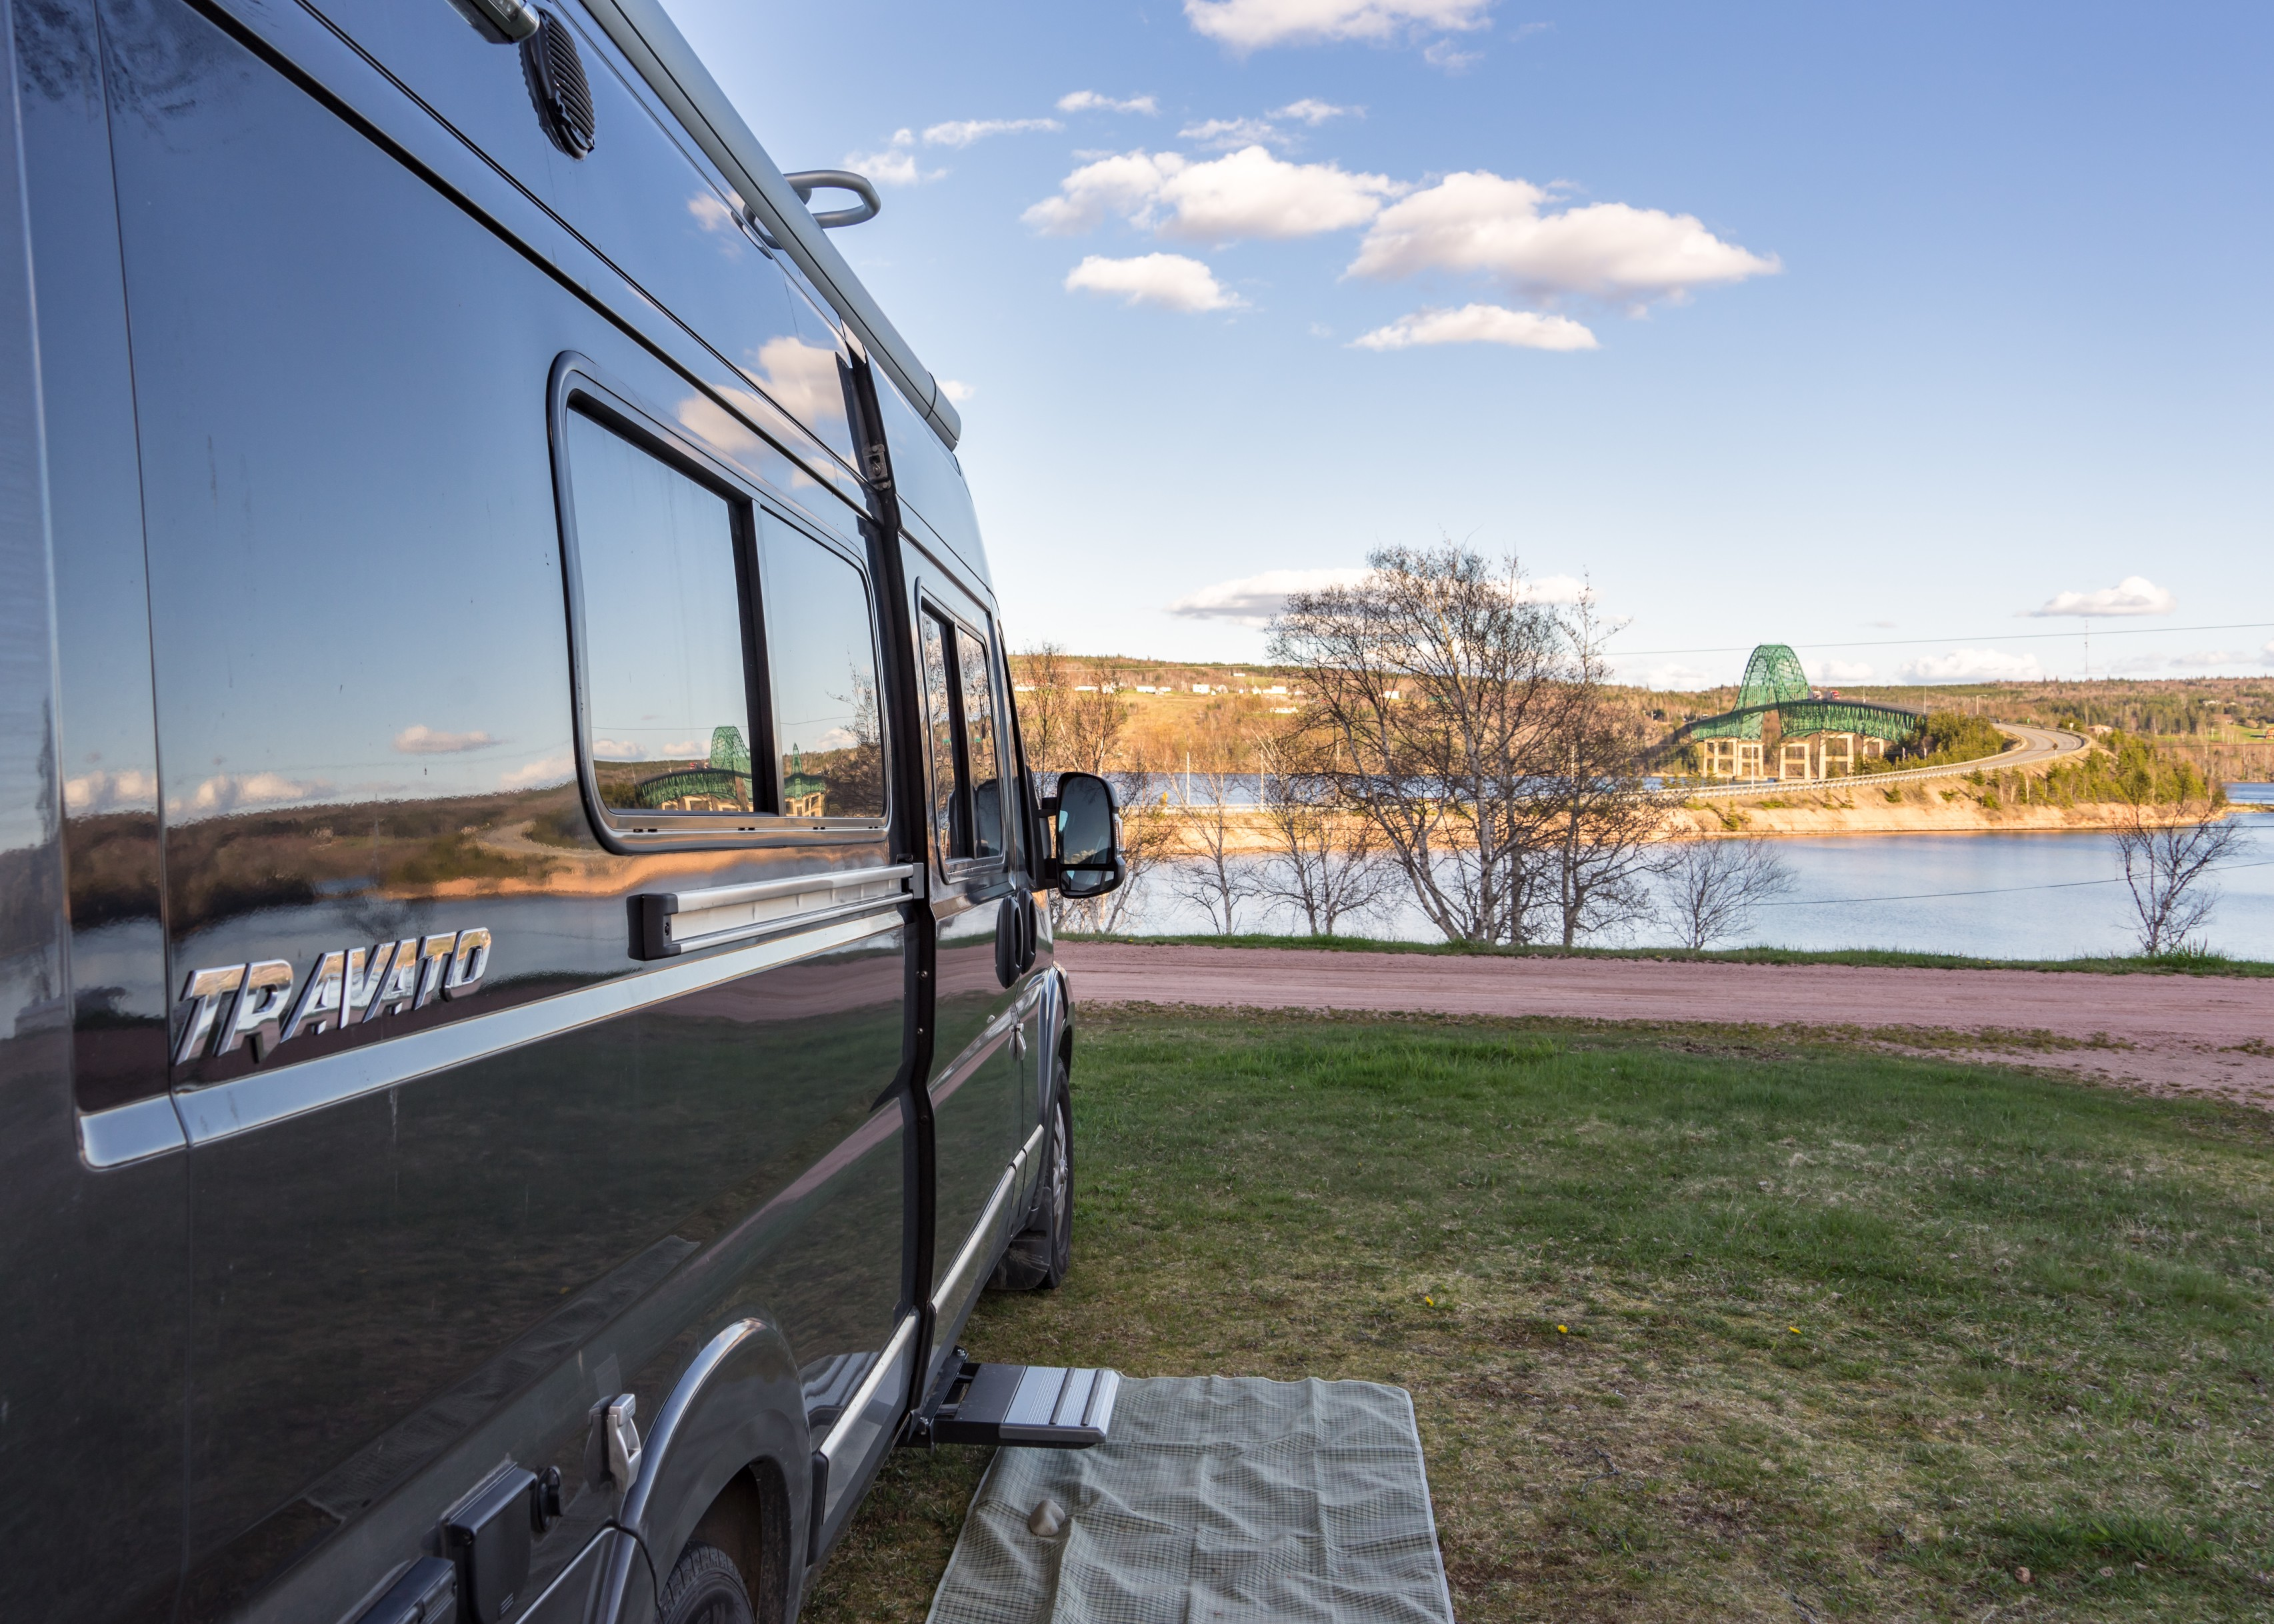 Winnebago Travato parked on the grass looking out at water ahead.